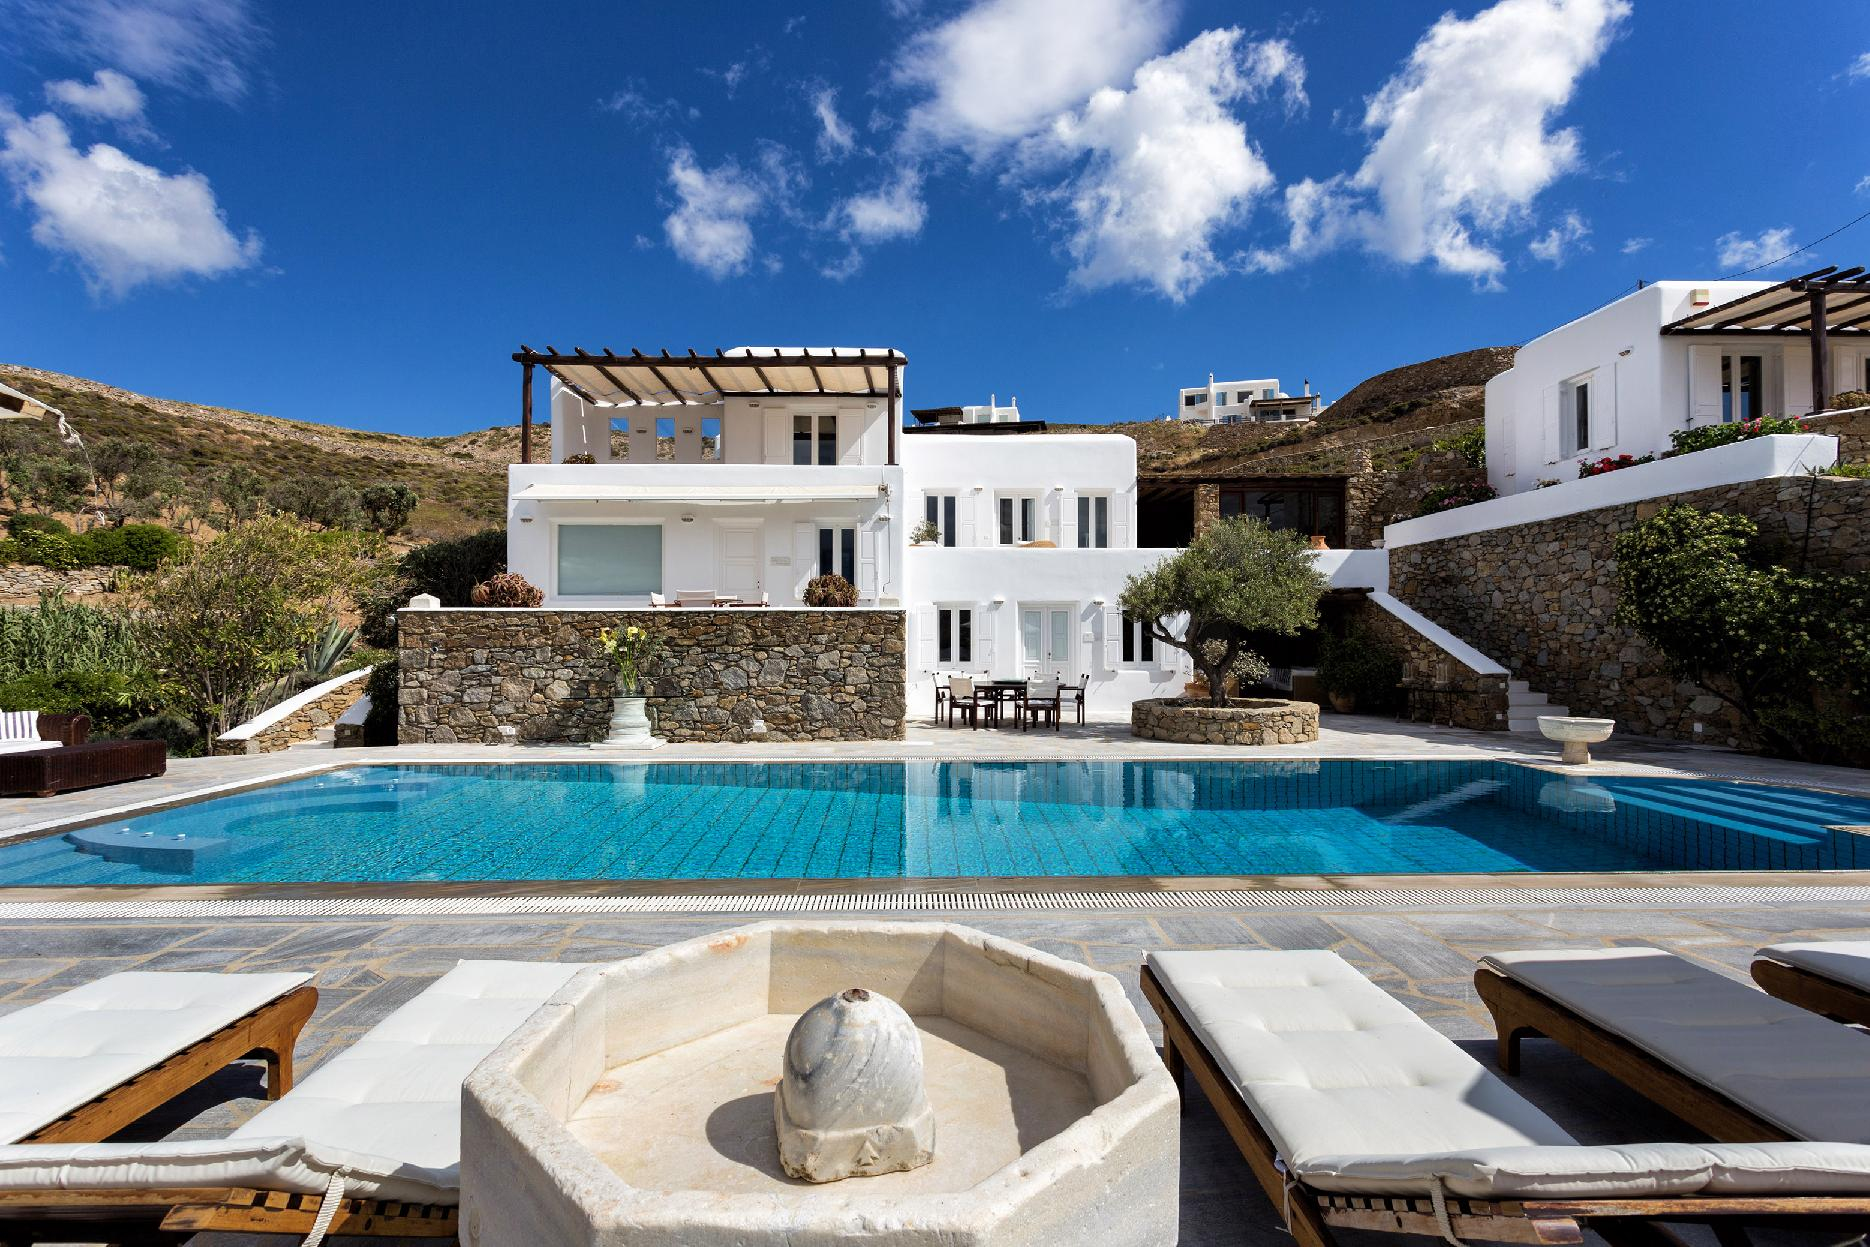 Apartment The Galaxy Mykonos villa with large pool and yoga platform photo 6005333